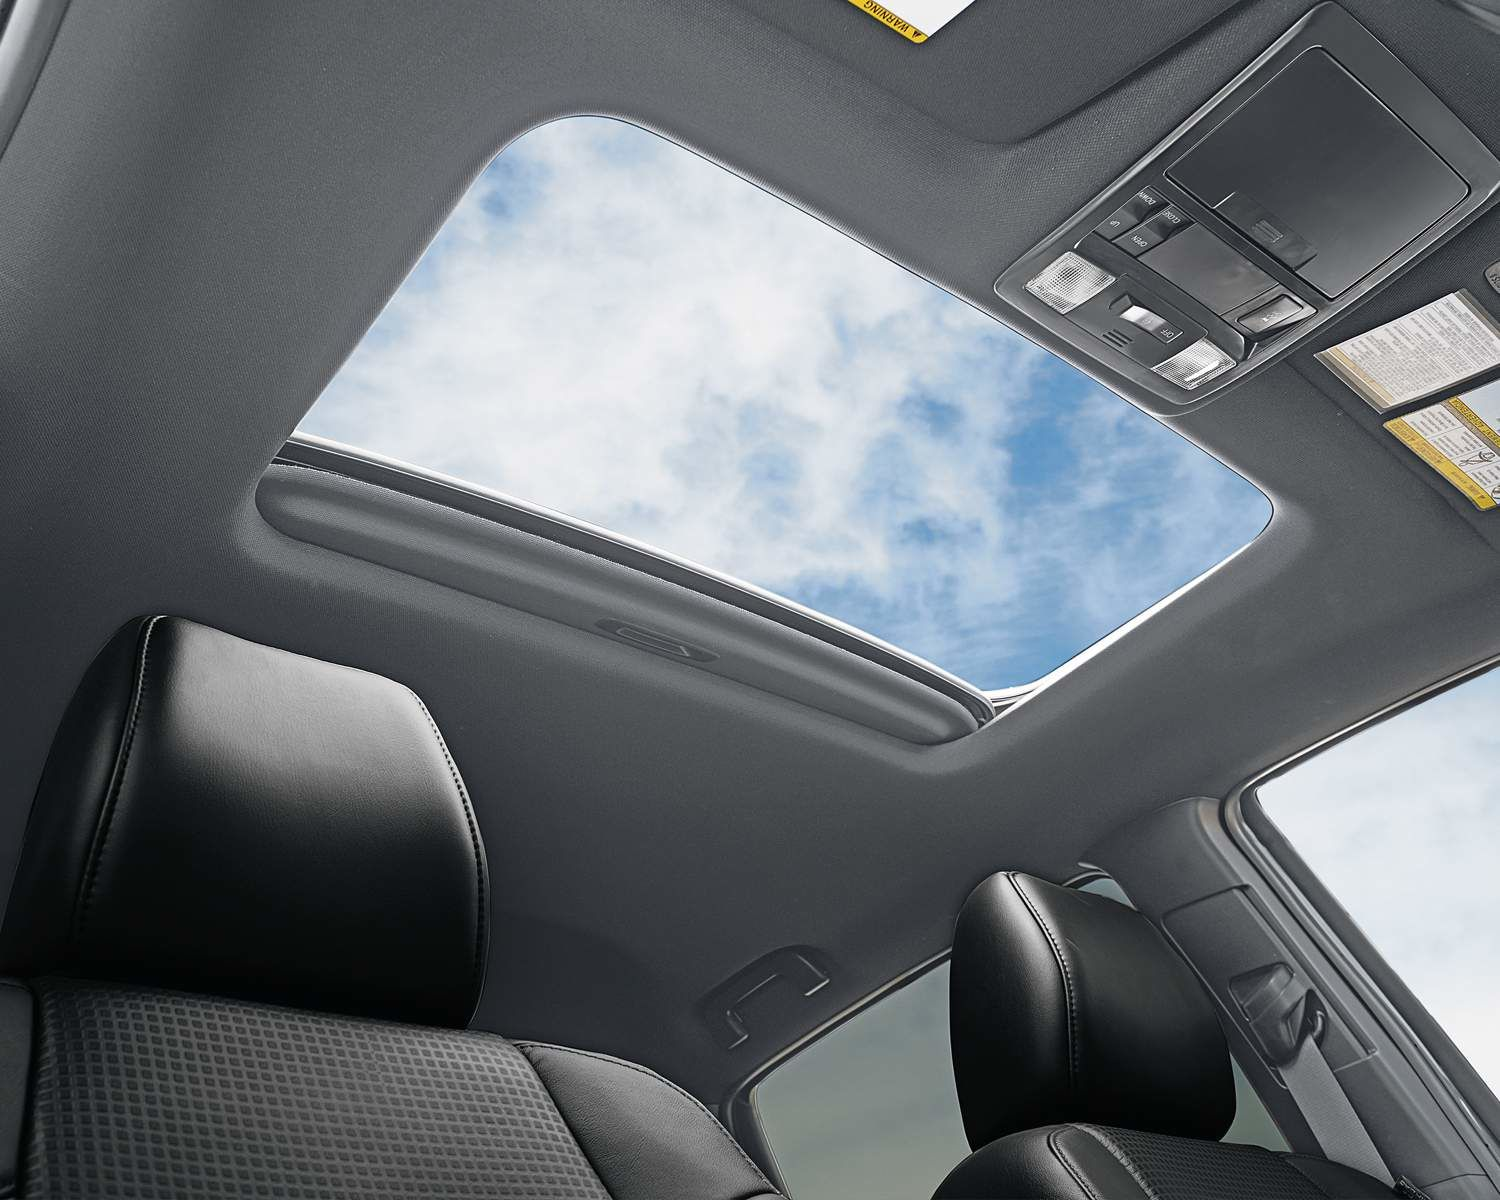 Tacoma Double Cab Nightshade interior with Power Moonroof shown in Black Leather